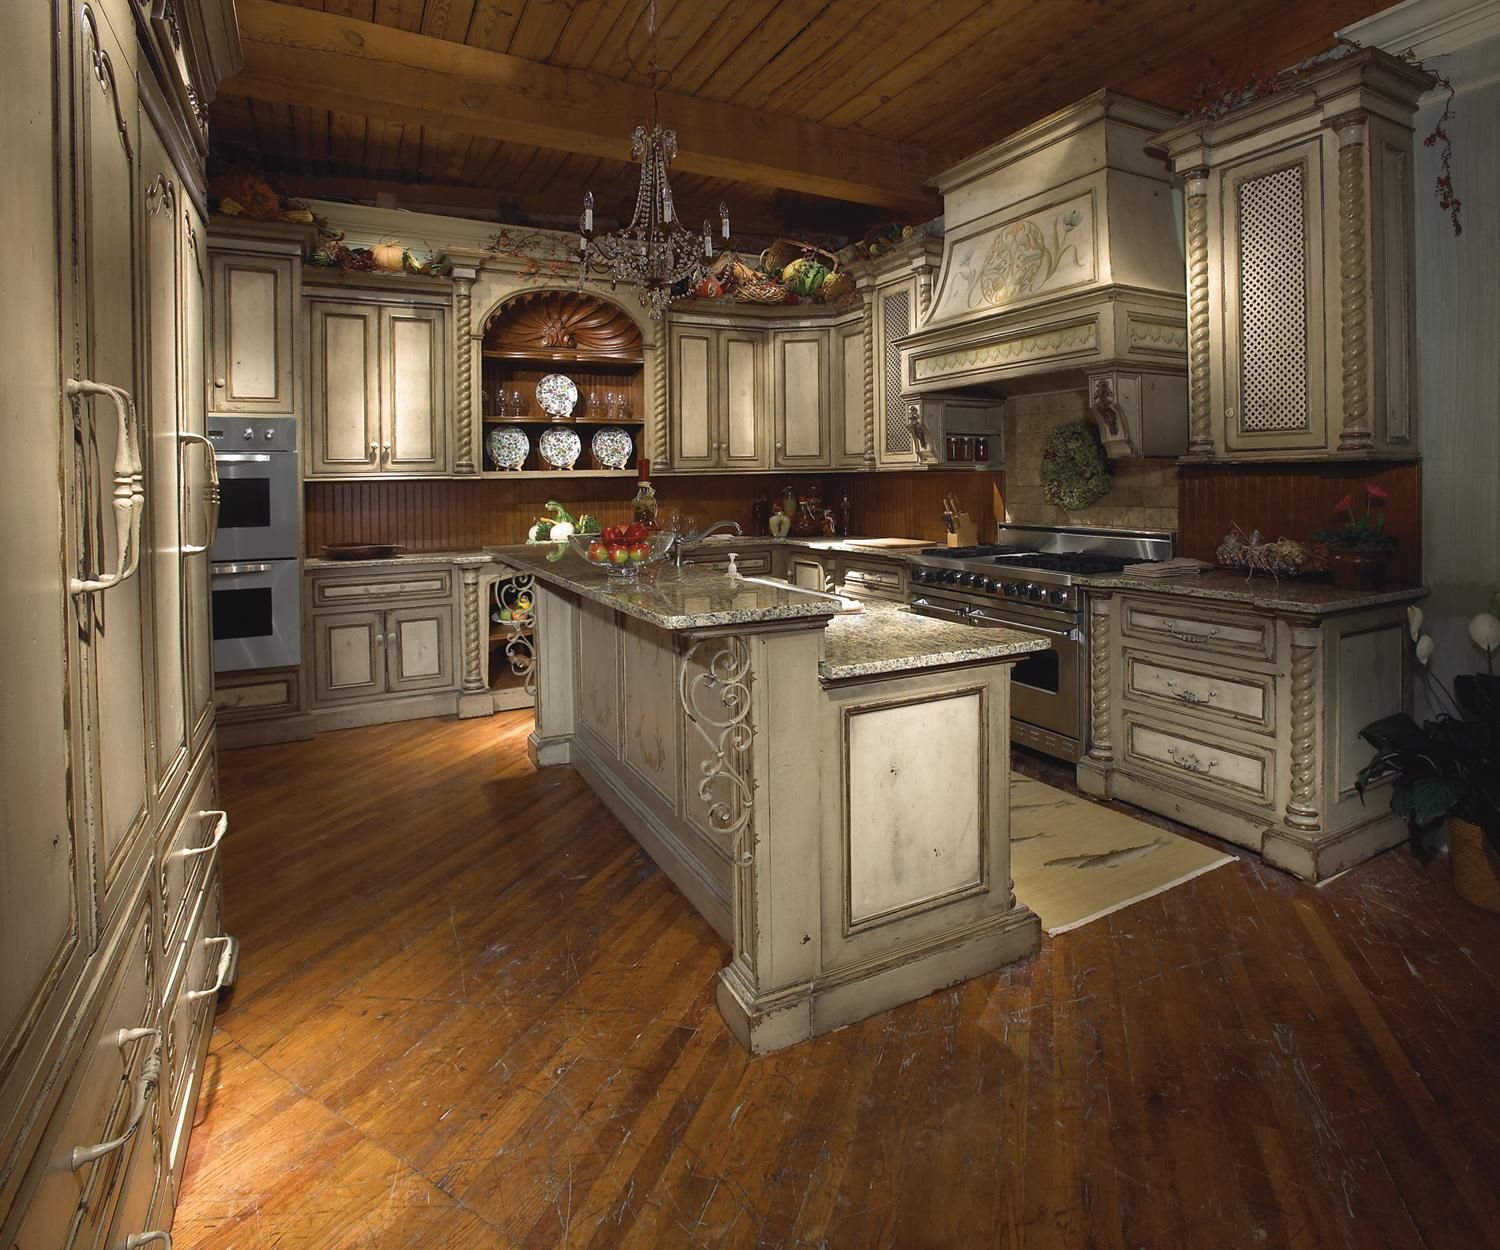 Tuscan Style Kitchen Cabinets: Tuscany Kitchen Features Stainless Steel Viking Appliances